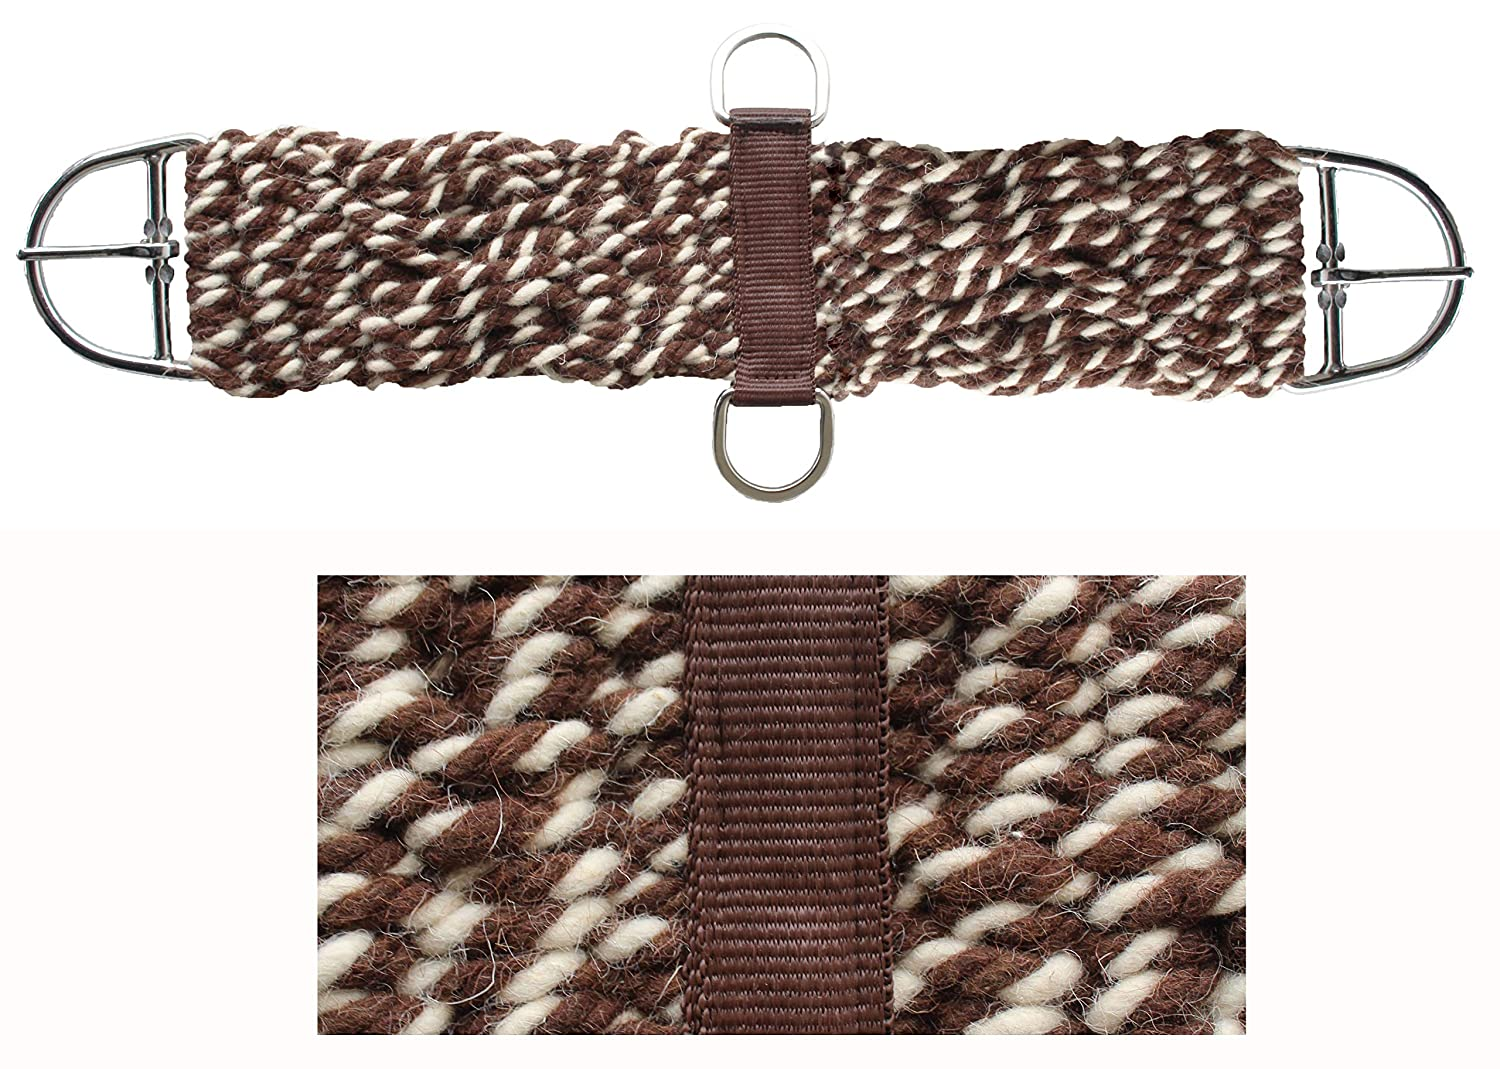 CHALLENGER 30 Horse Western Tack Two-Toned Mohair Wool Breathable Saddle Girth Cinch 97RT03-30